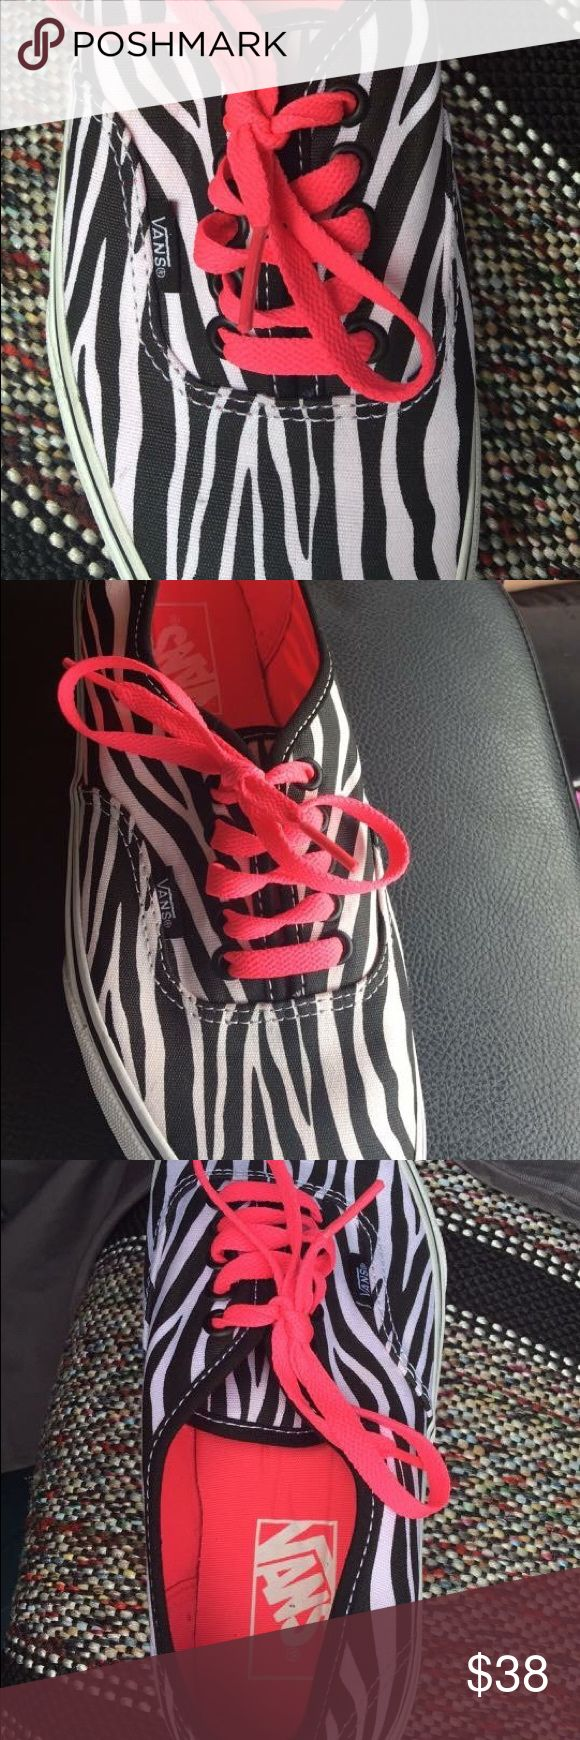 Vans for your closet New tennis shoes...price is firm. Vans Shoes Sneakers